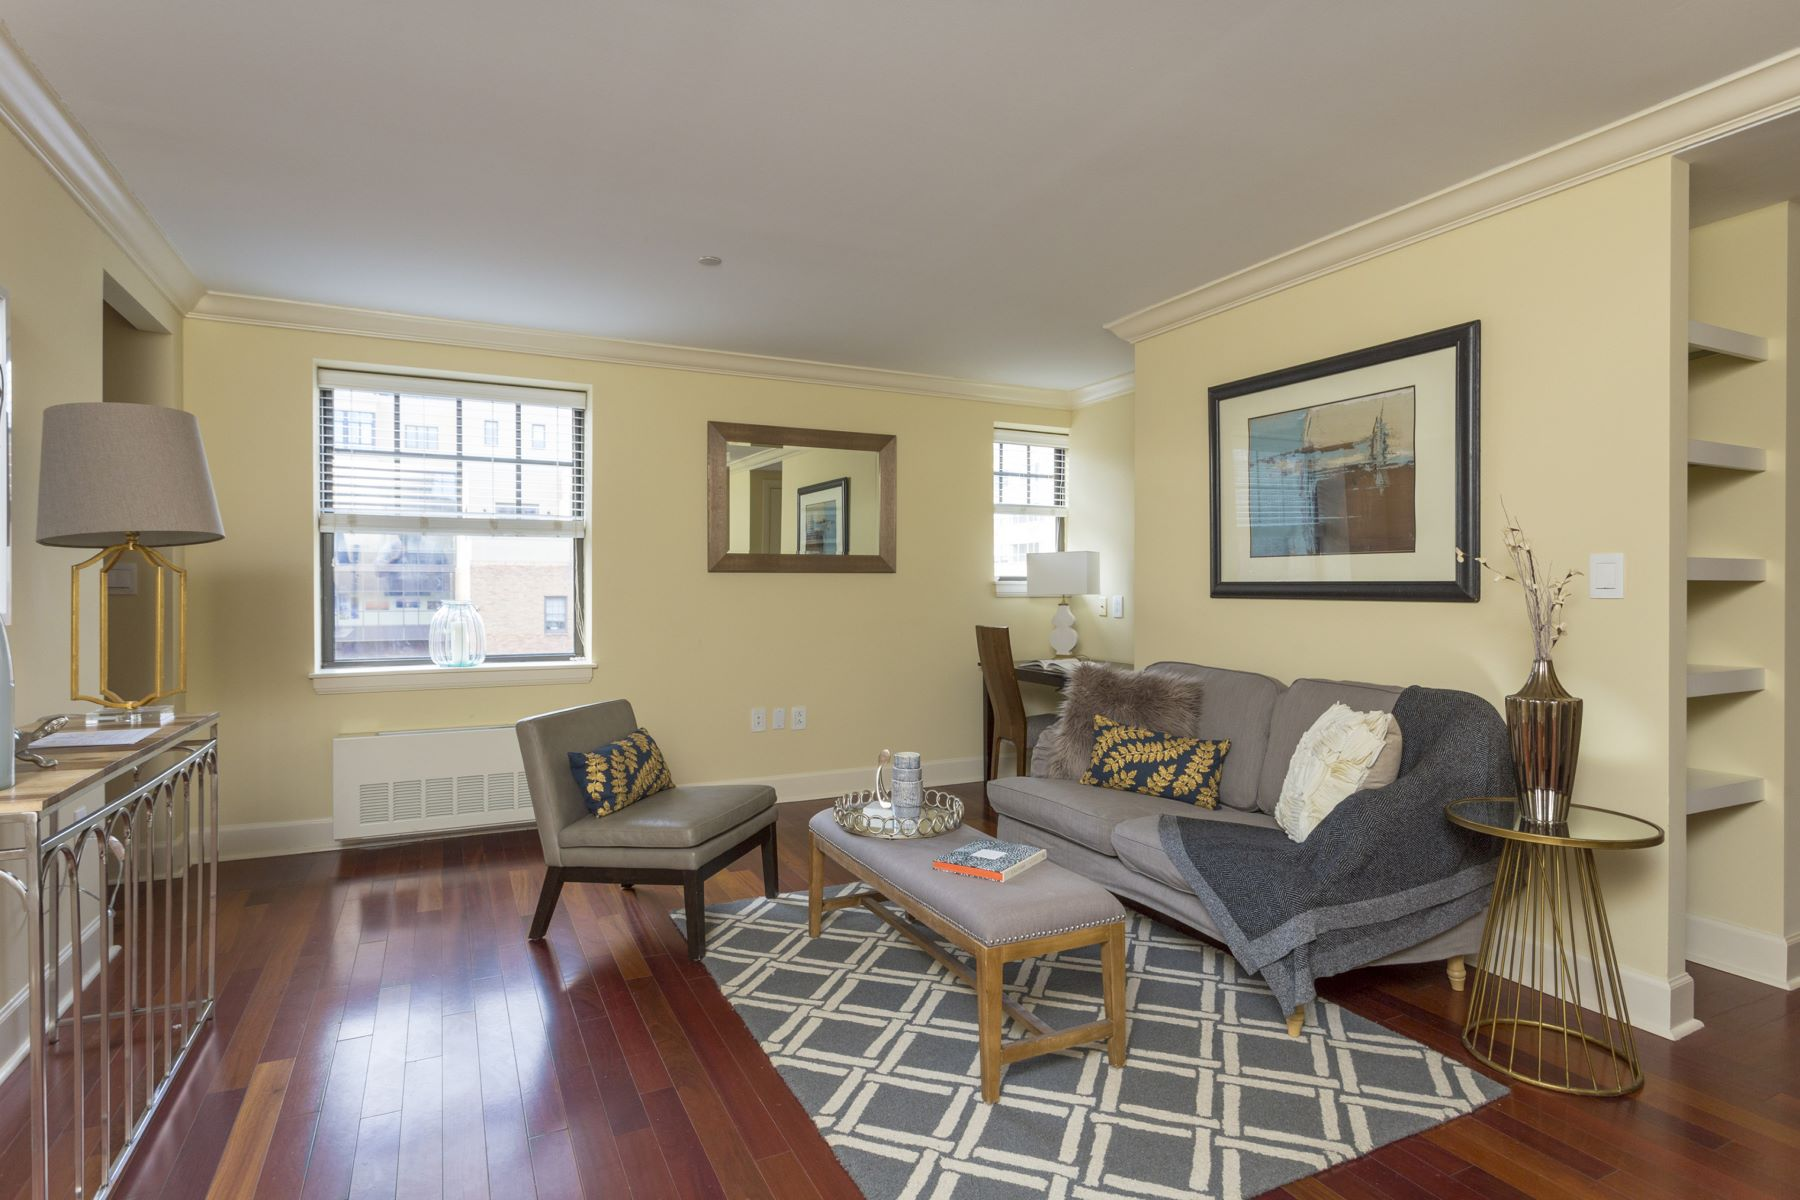 for Sale at The Warwick 1701-15 LOCUST ST #1901 1901, Philadelphia, Pennsylvania, 19103 United States